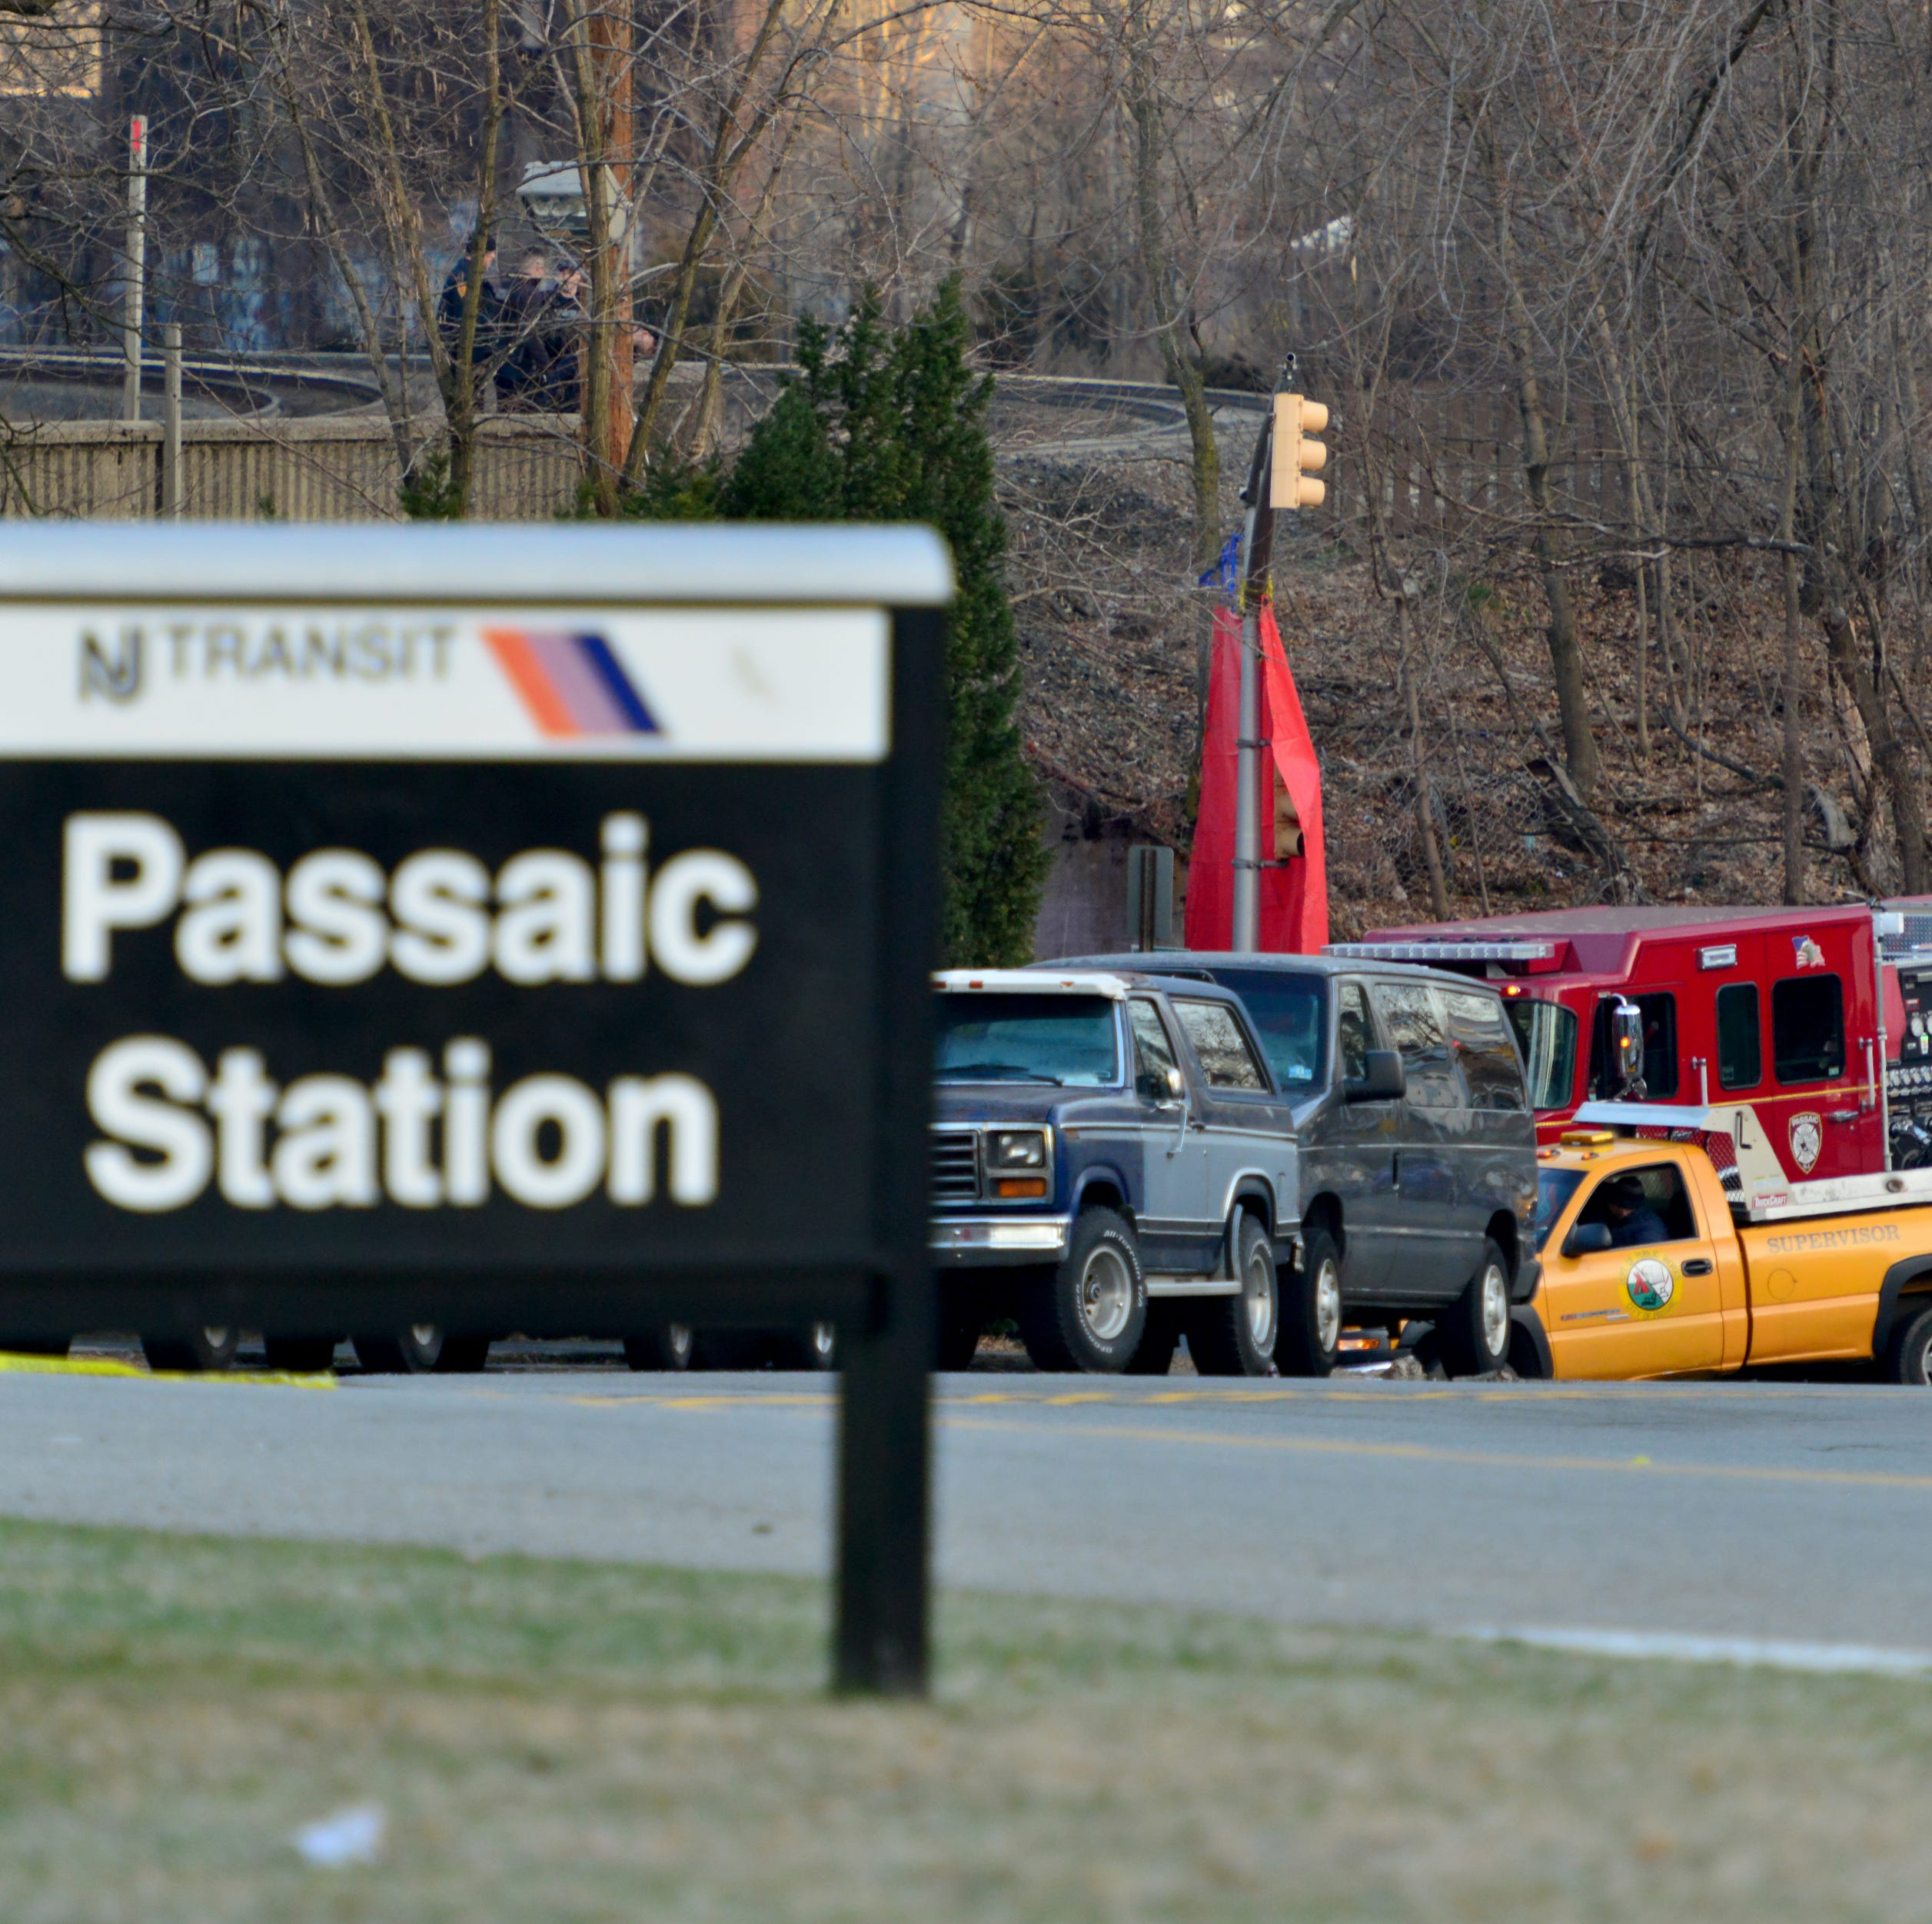 Railroad bridge death disrupts morning commute in Passaic